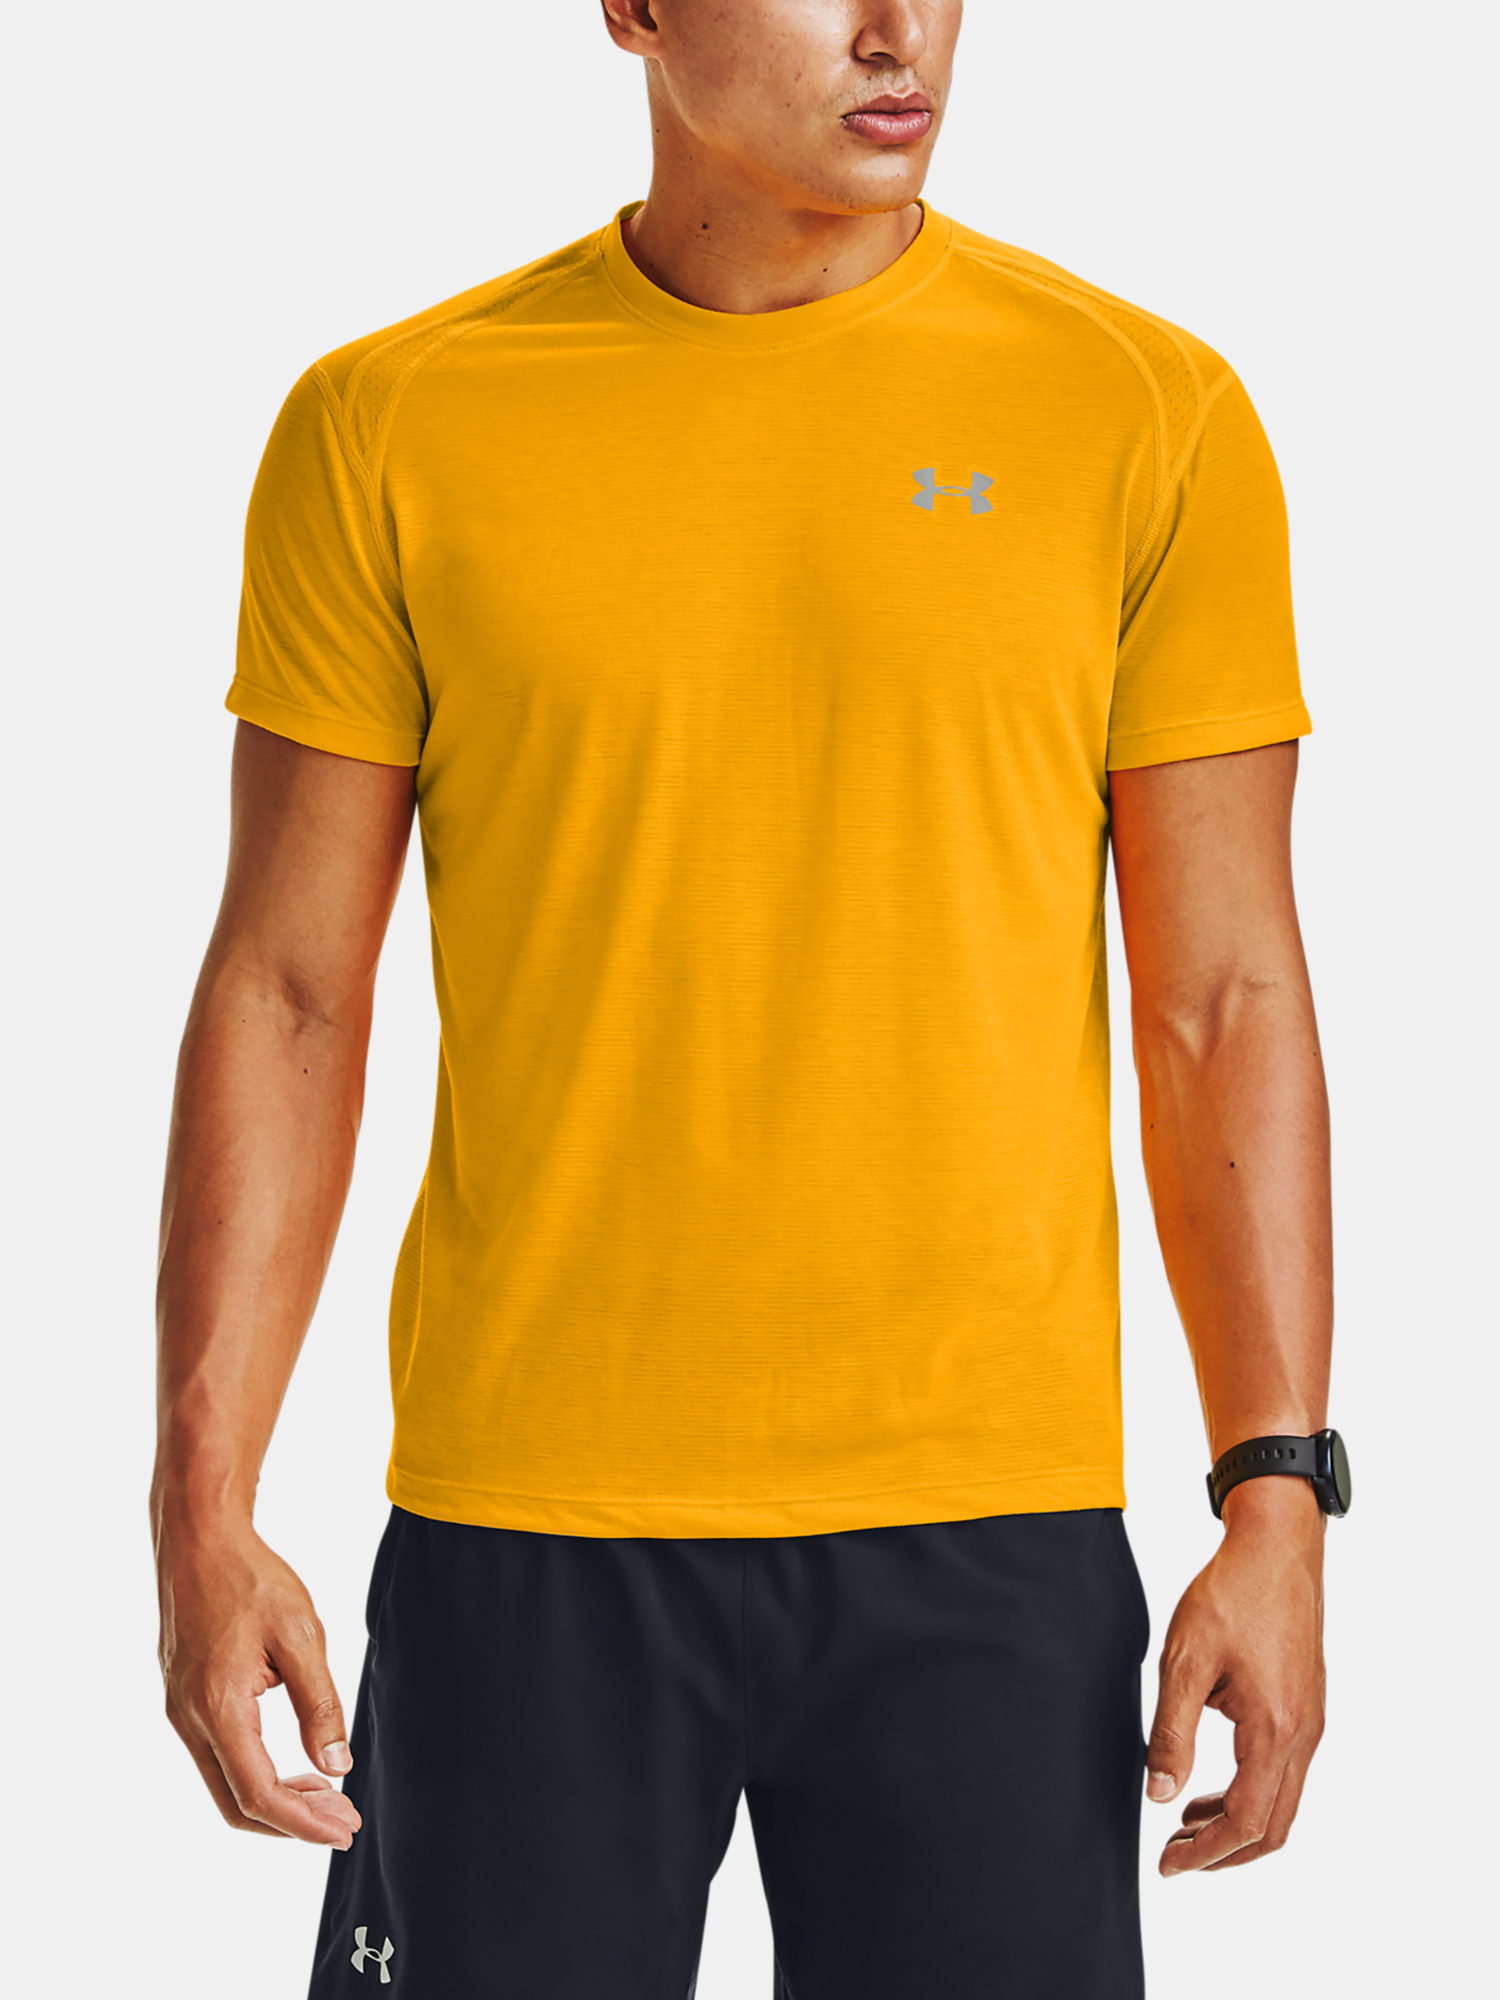 Tričko Under Armour STREAKER 2.0 SHORTSLEEVE-ORG (1)